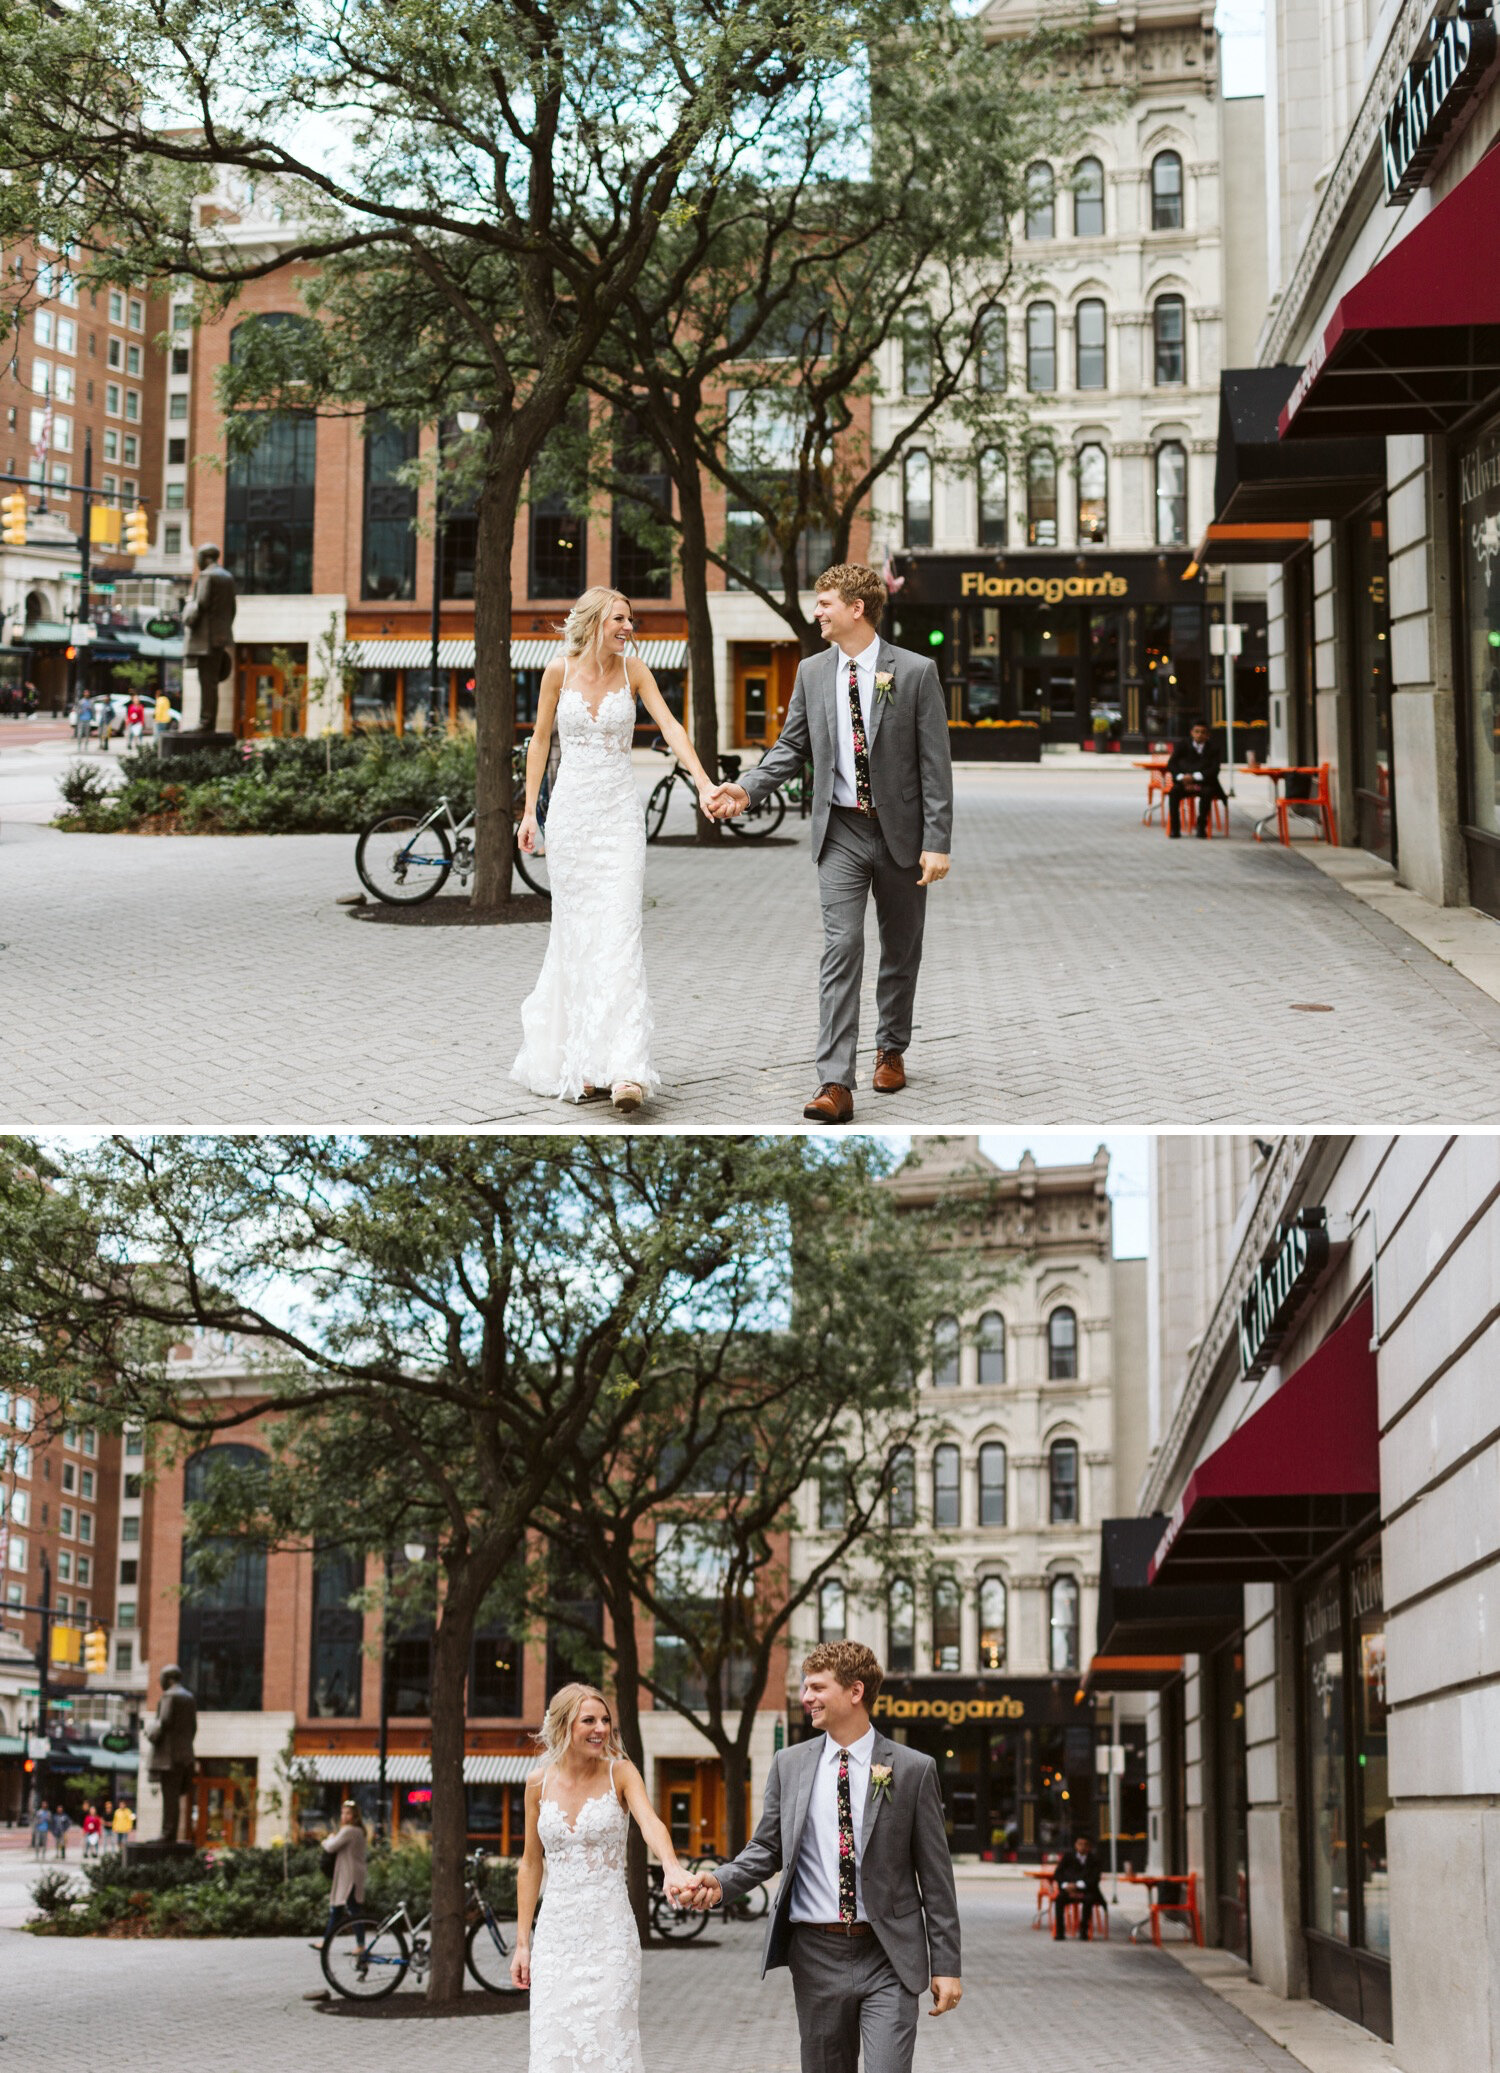 Wedding Photography in Grand Rapids